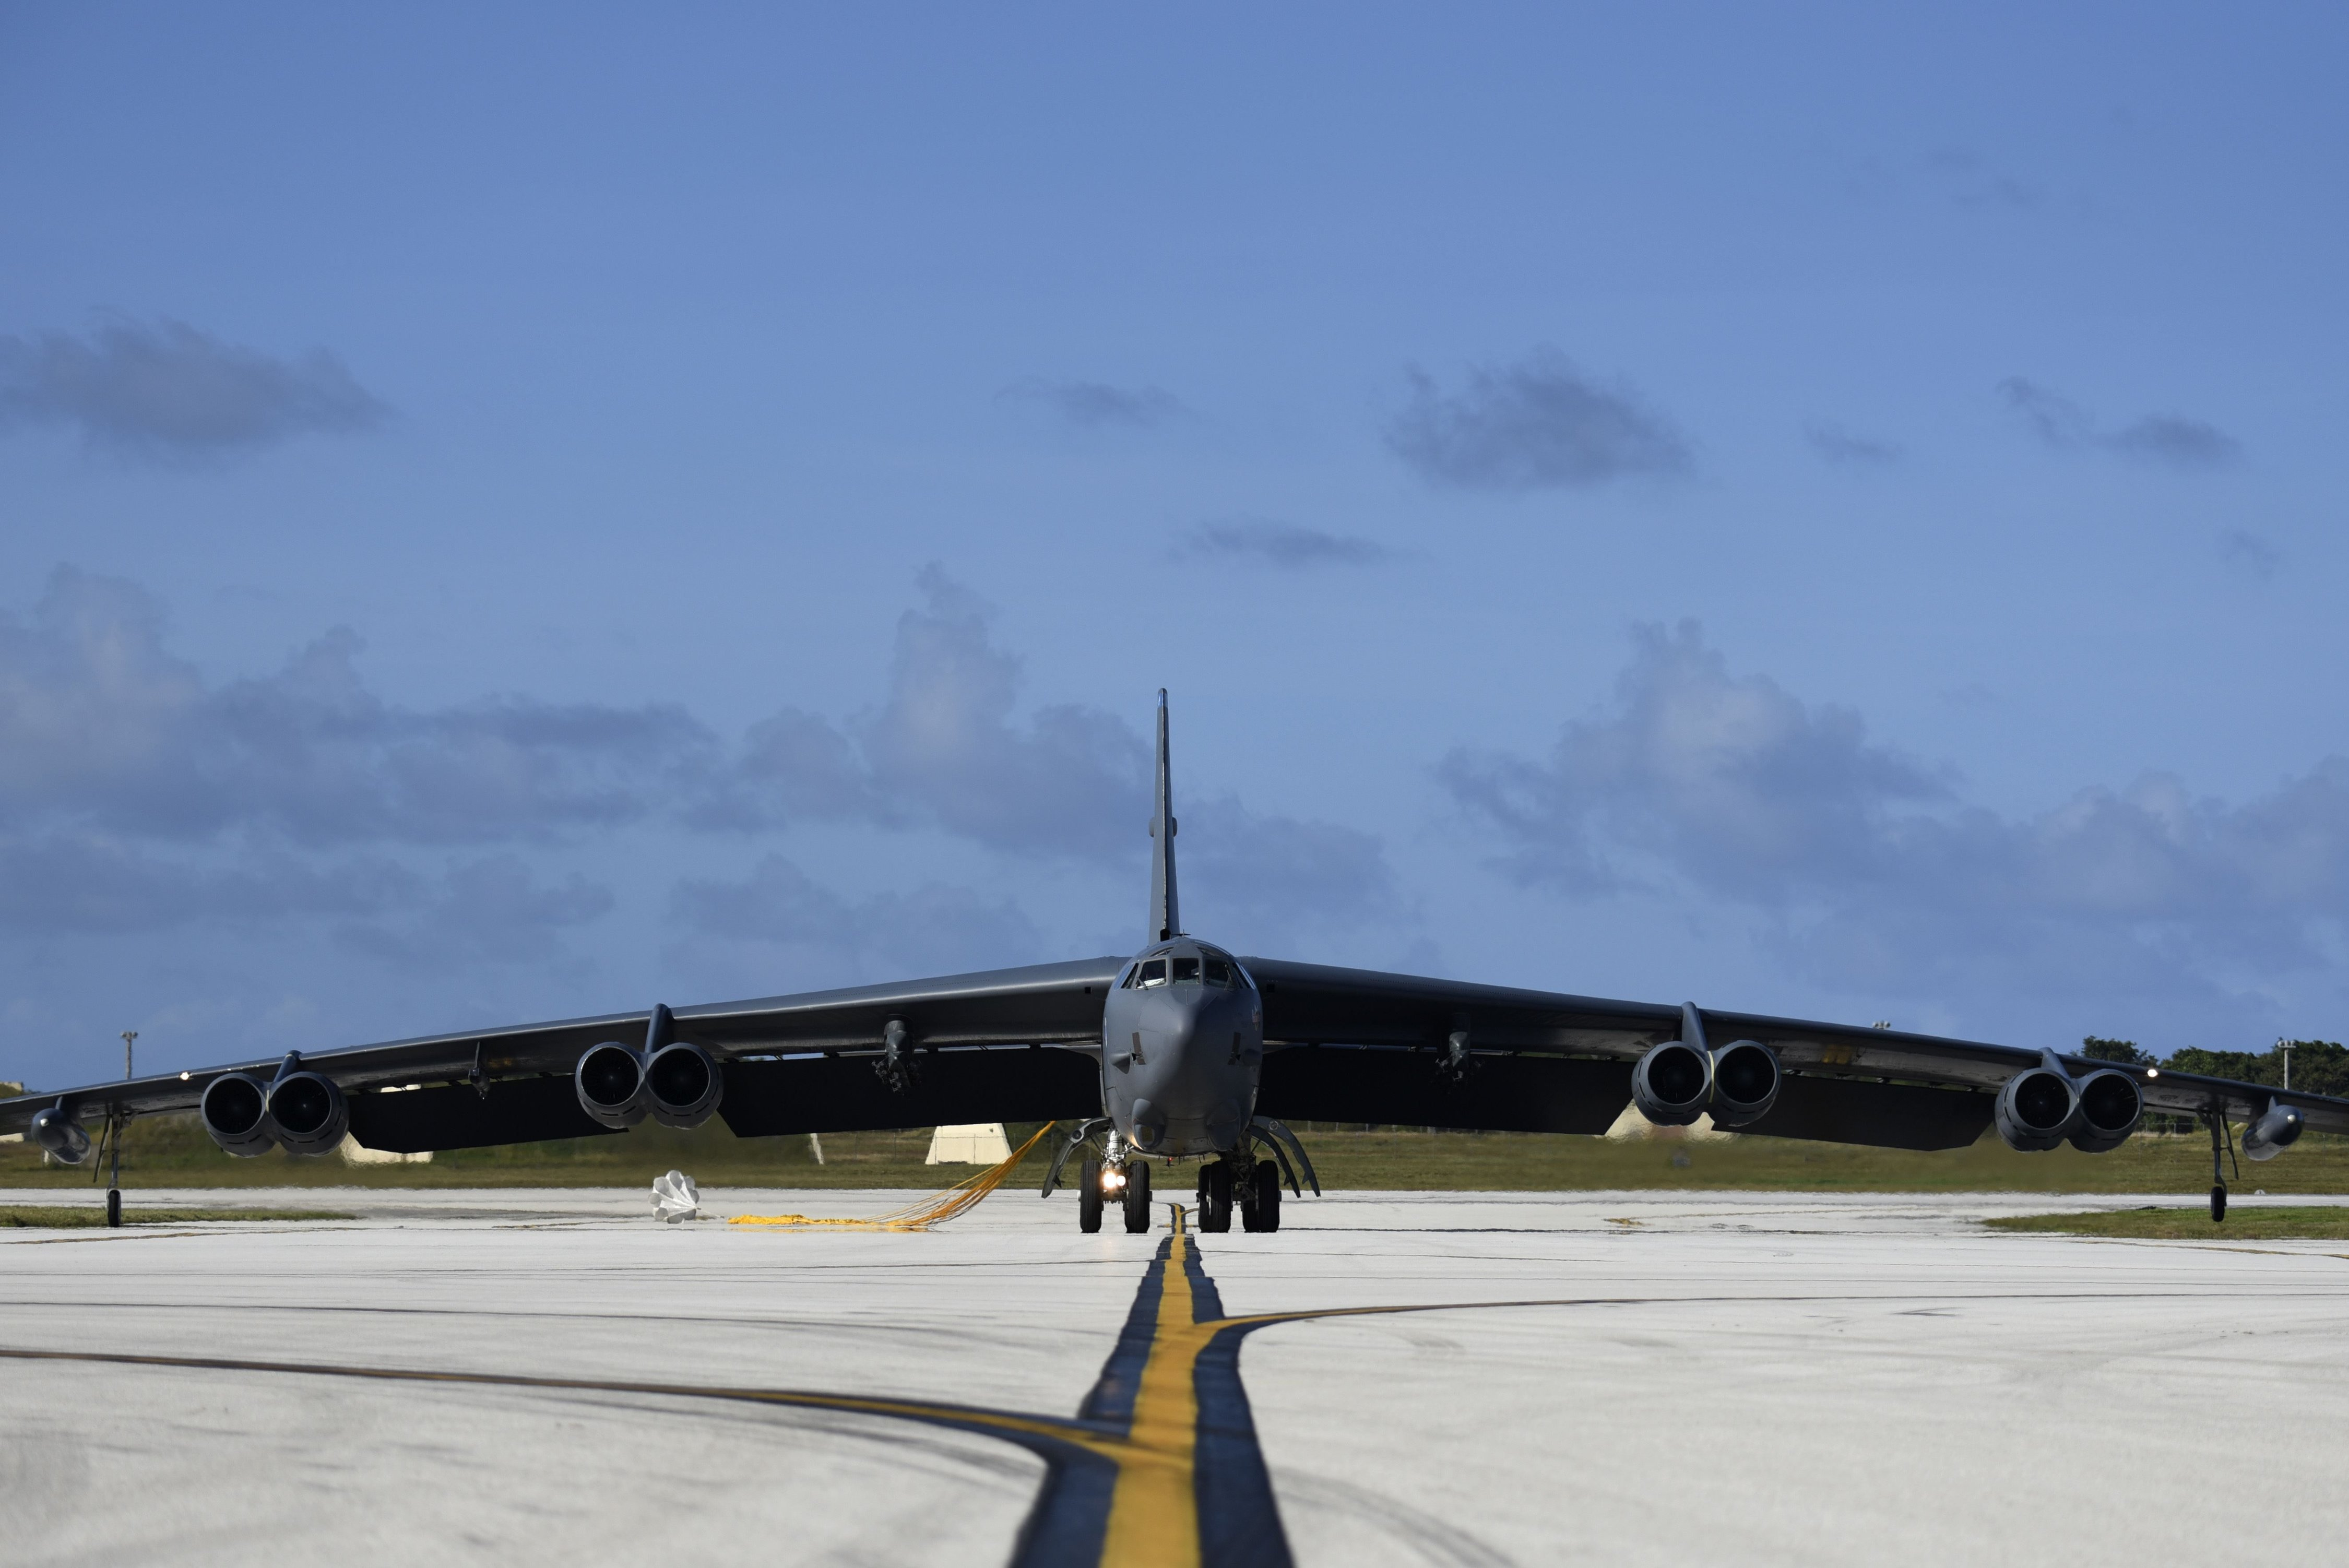 B-52H Stratofortress bomber taxis after landing